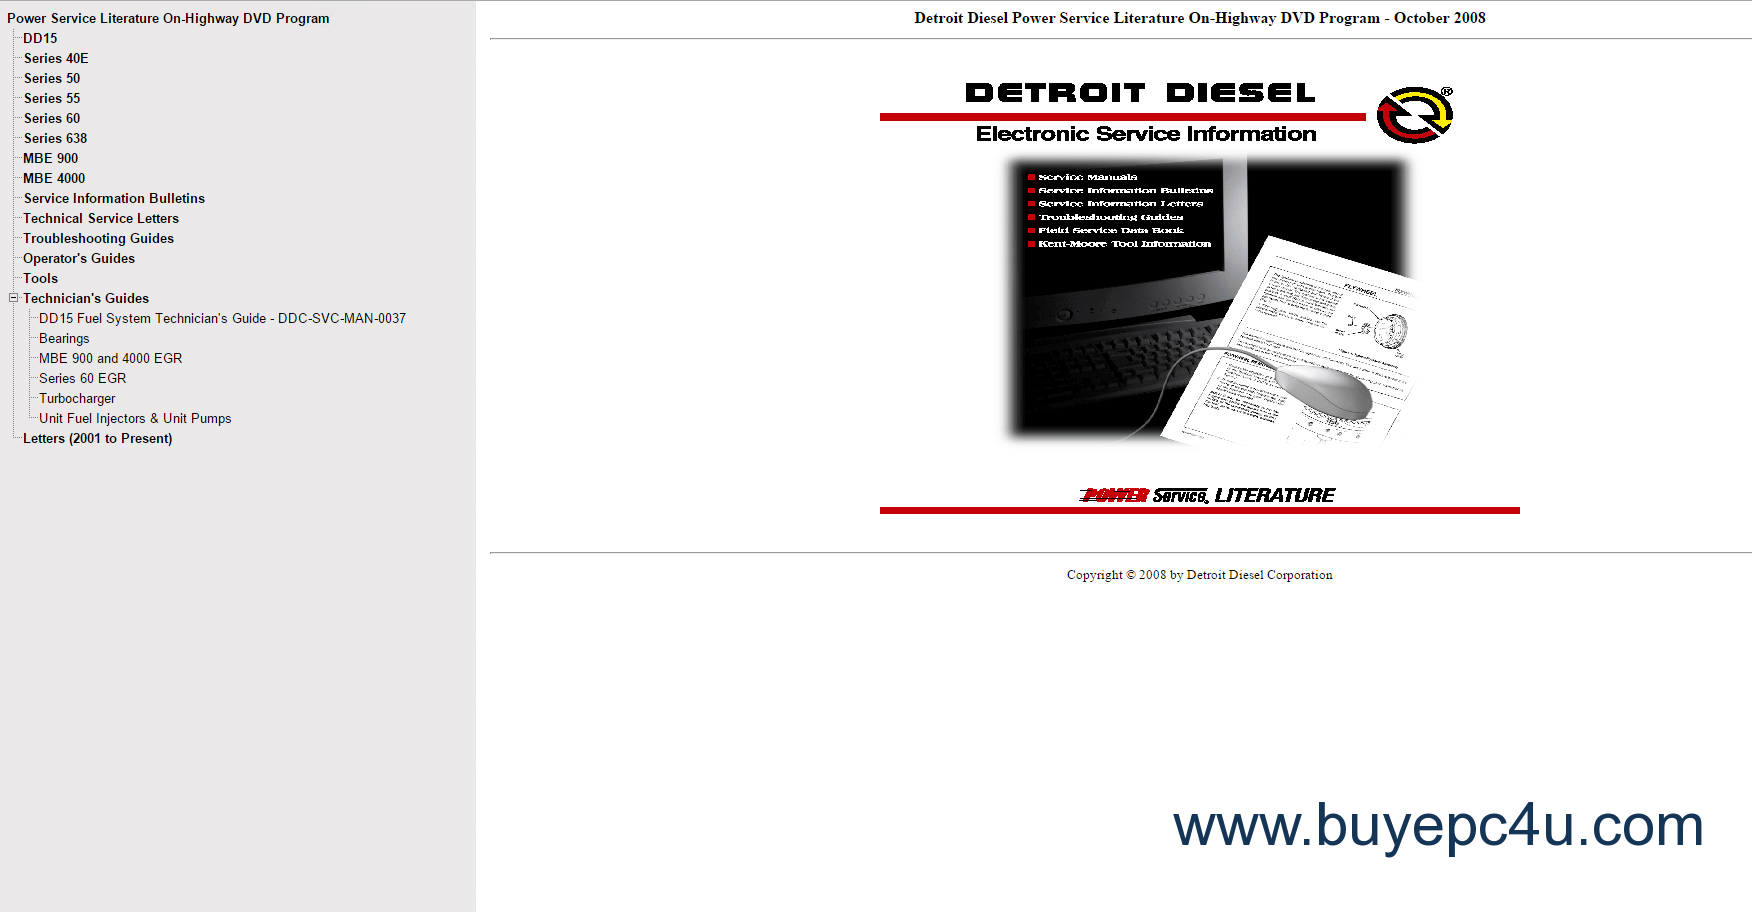 Detroit Diesel Power Service Literature On-Highway 2008